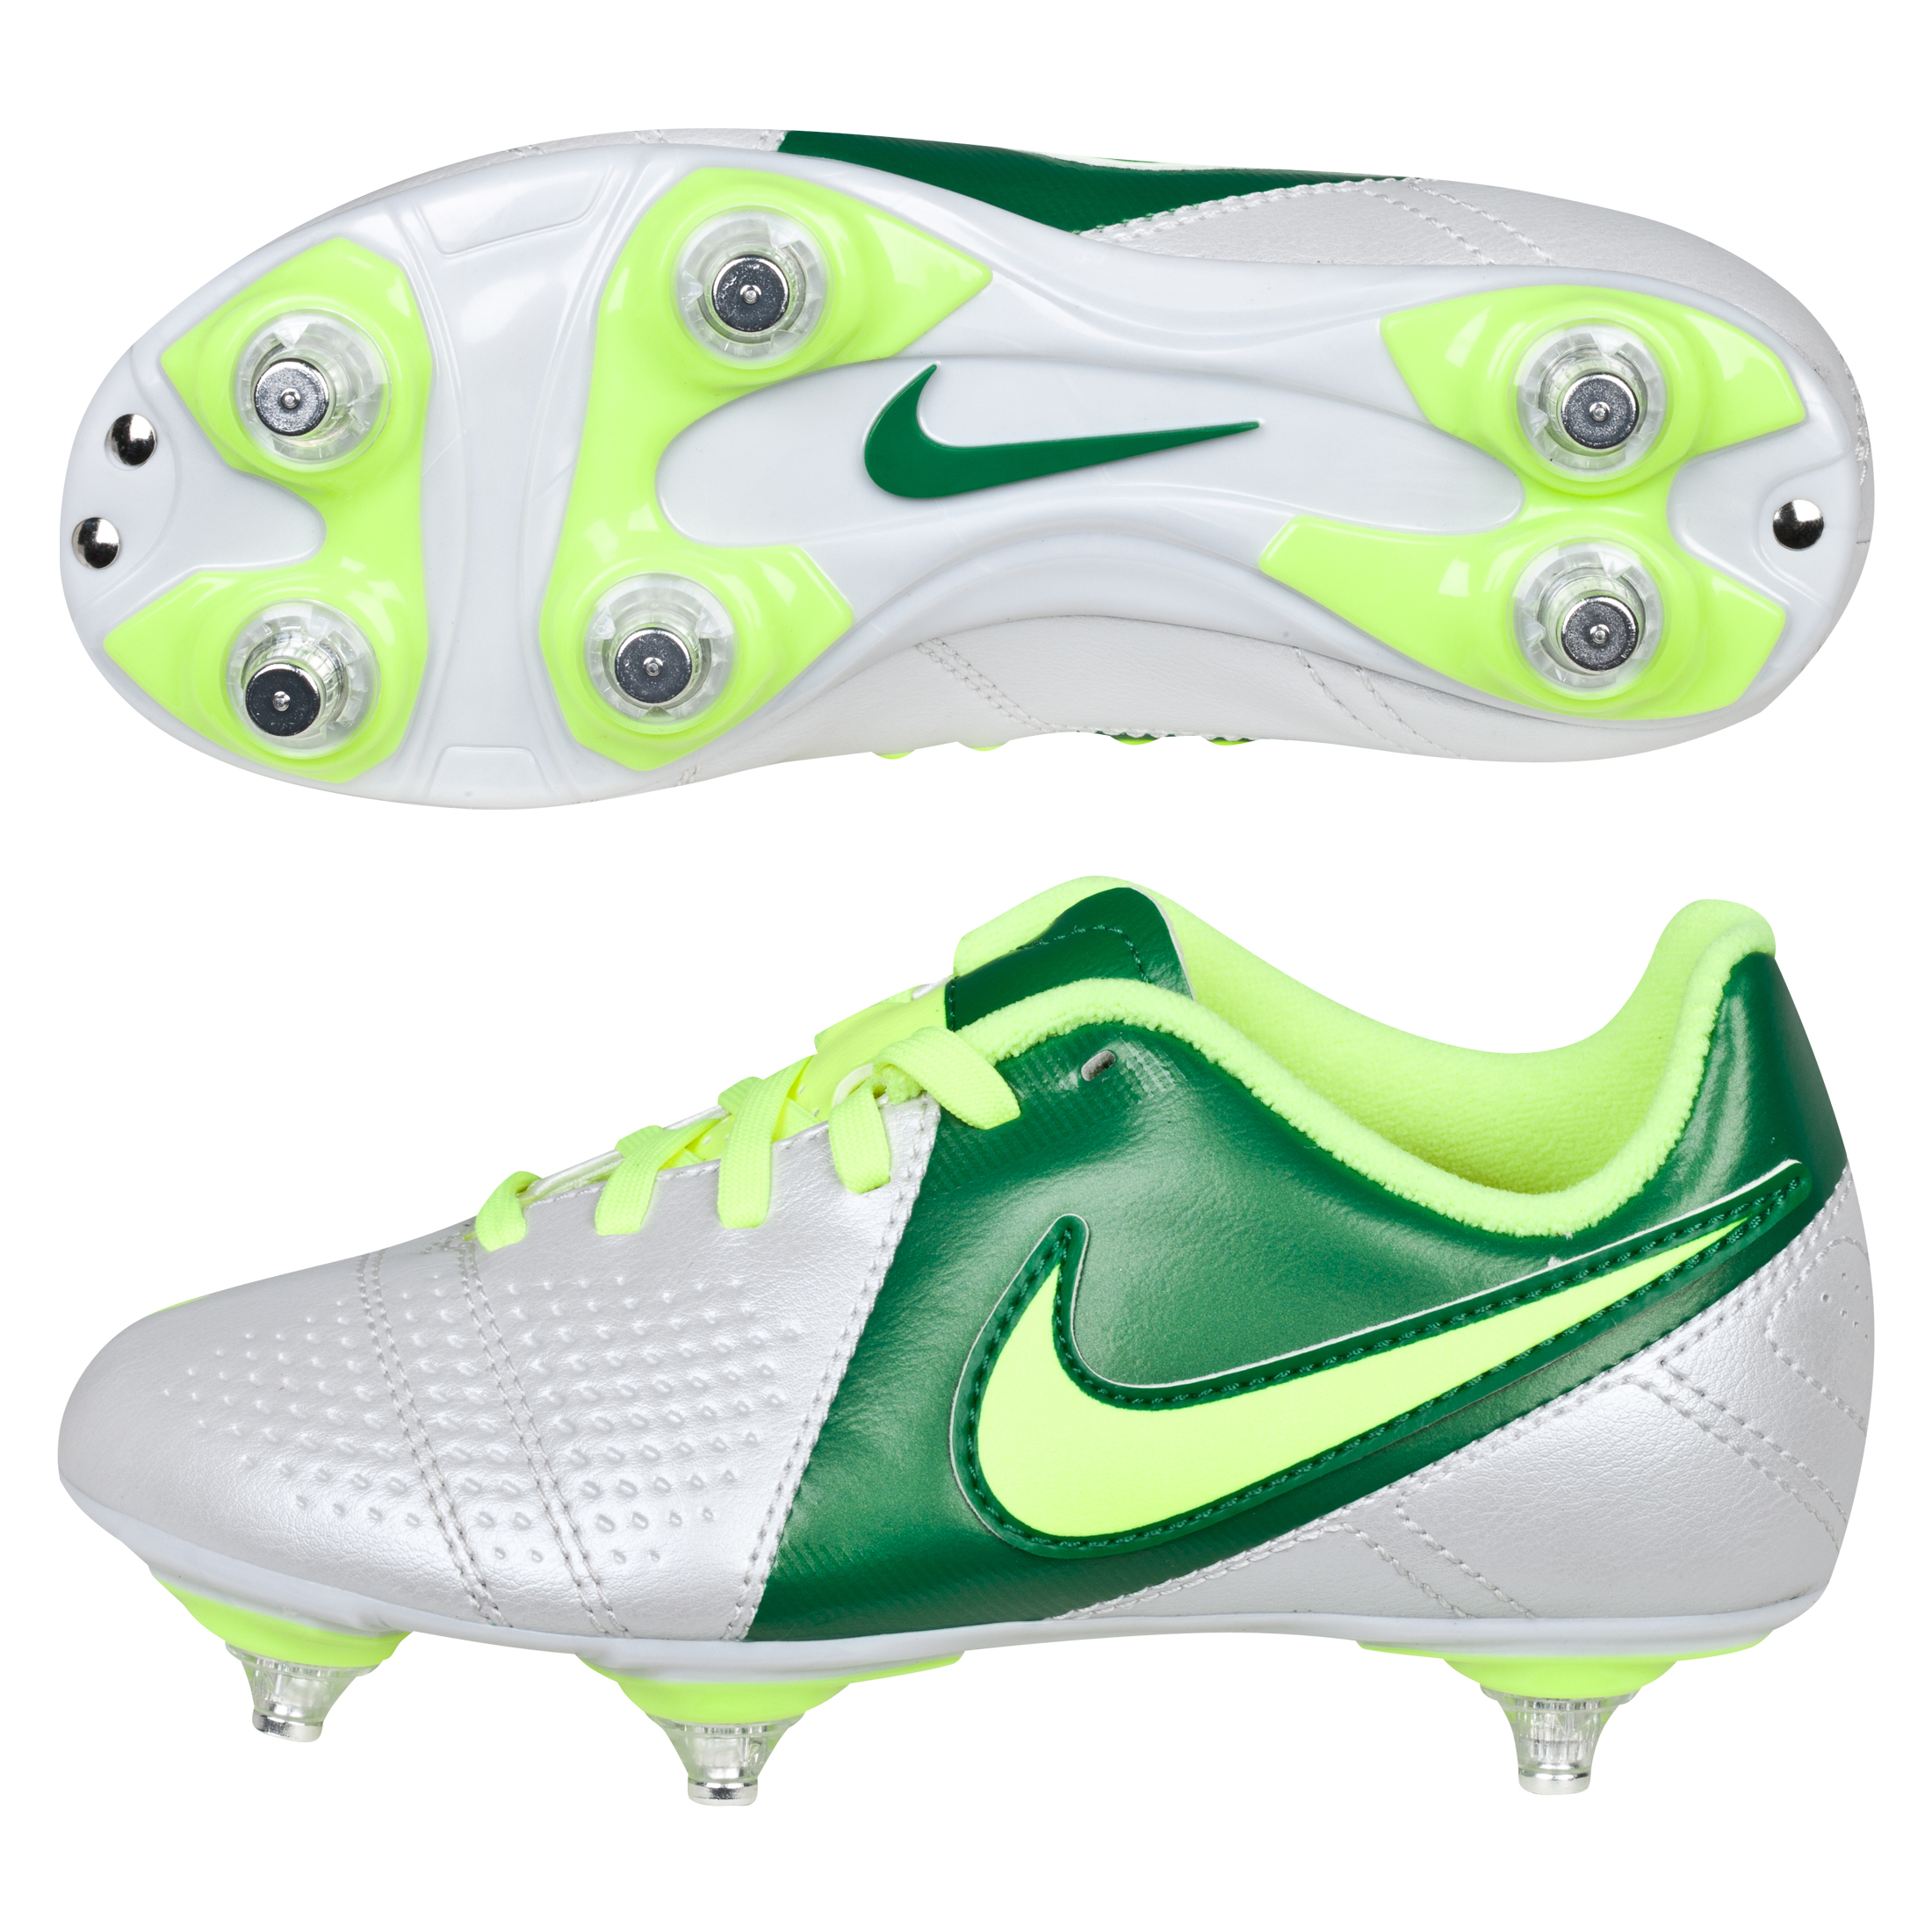 Nike CTR360 Libretto III Soft Ground Football Boots - White/Volt/Pine Green - Kids